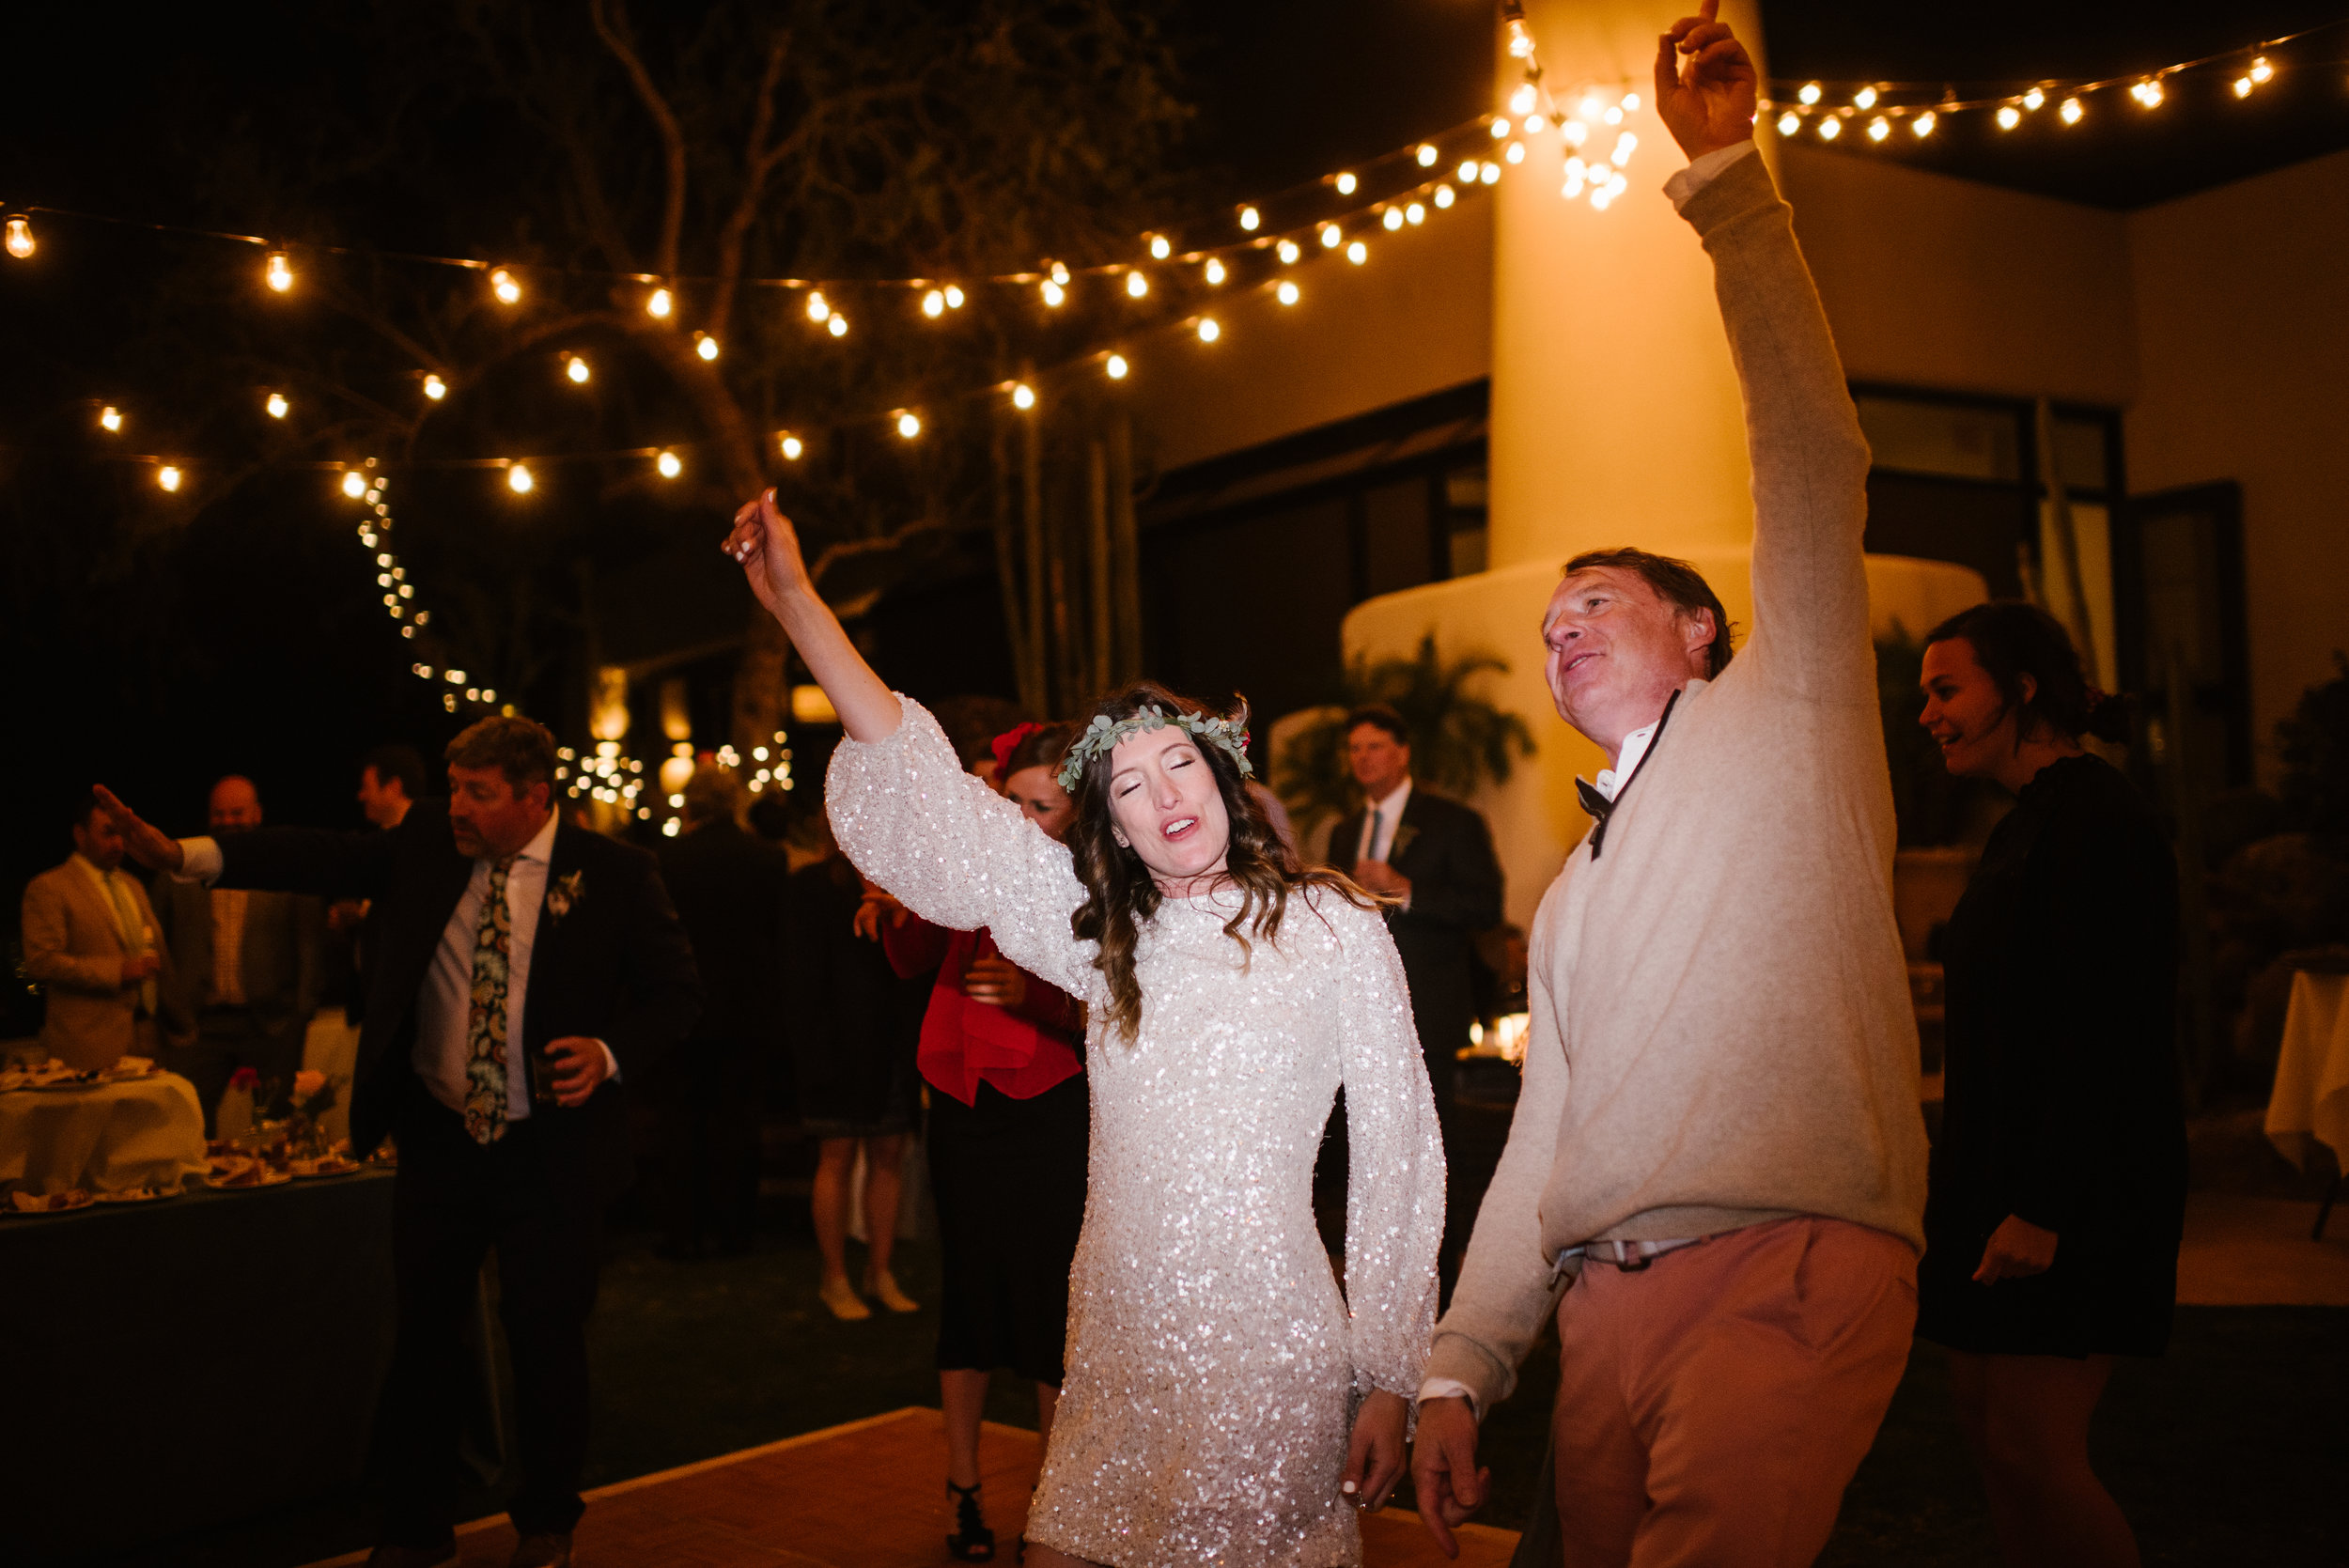 ArizonaWeddingPhotographer_Schad_1081.jpg